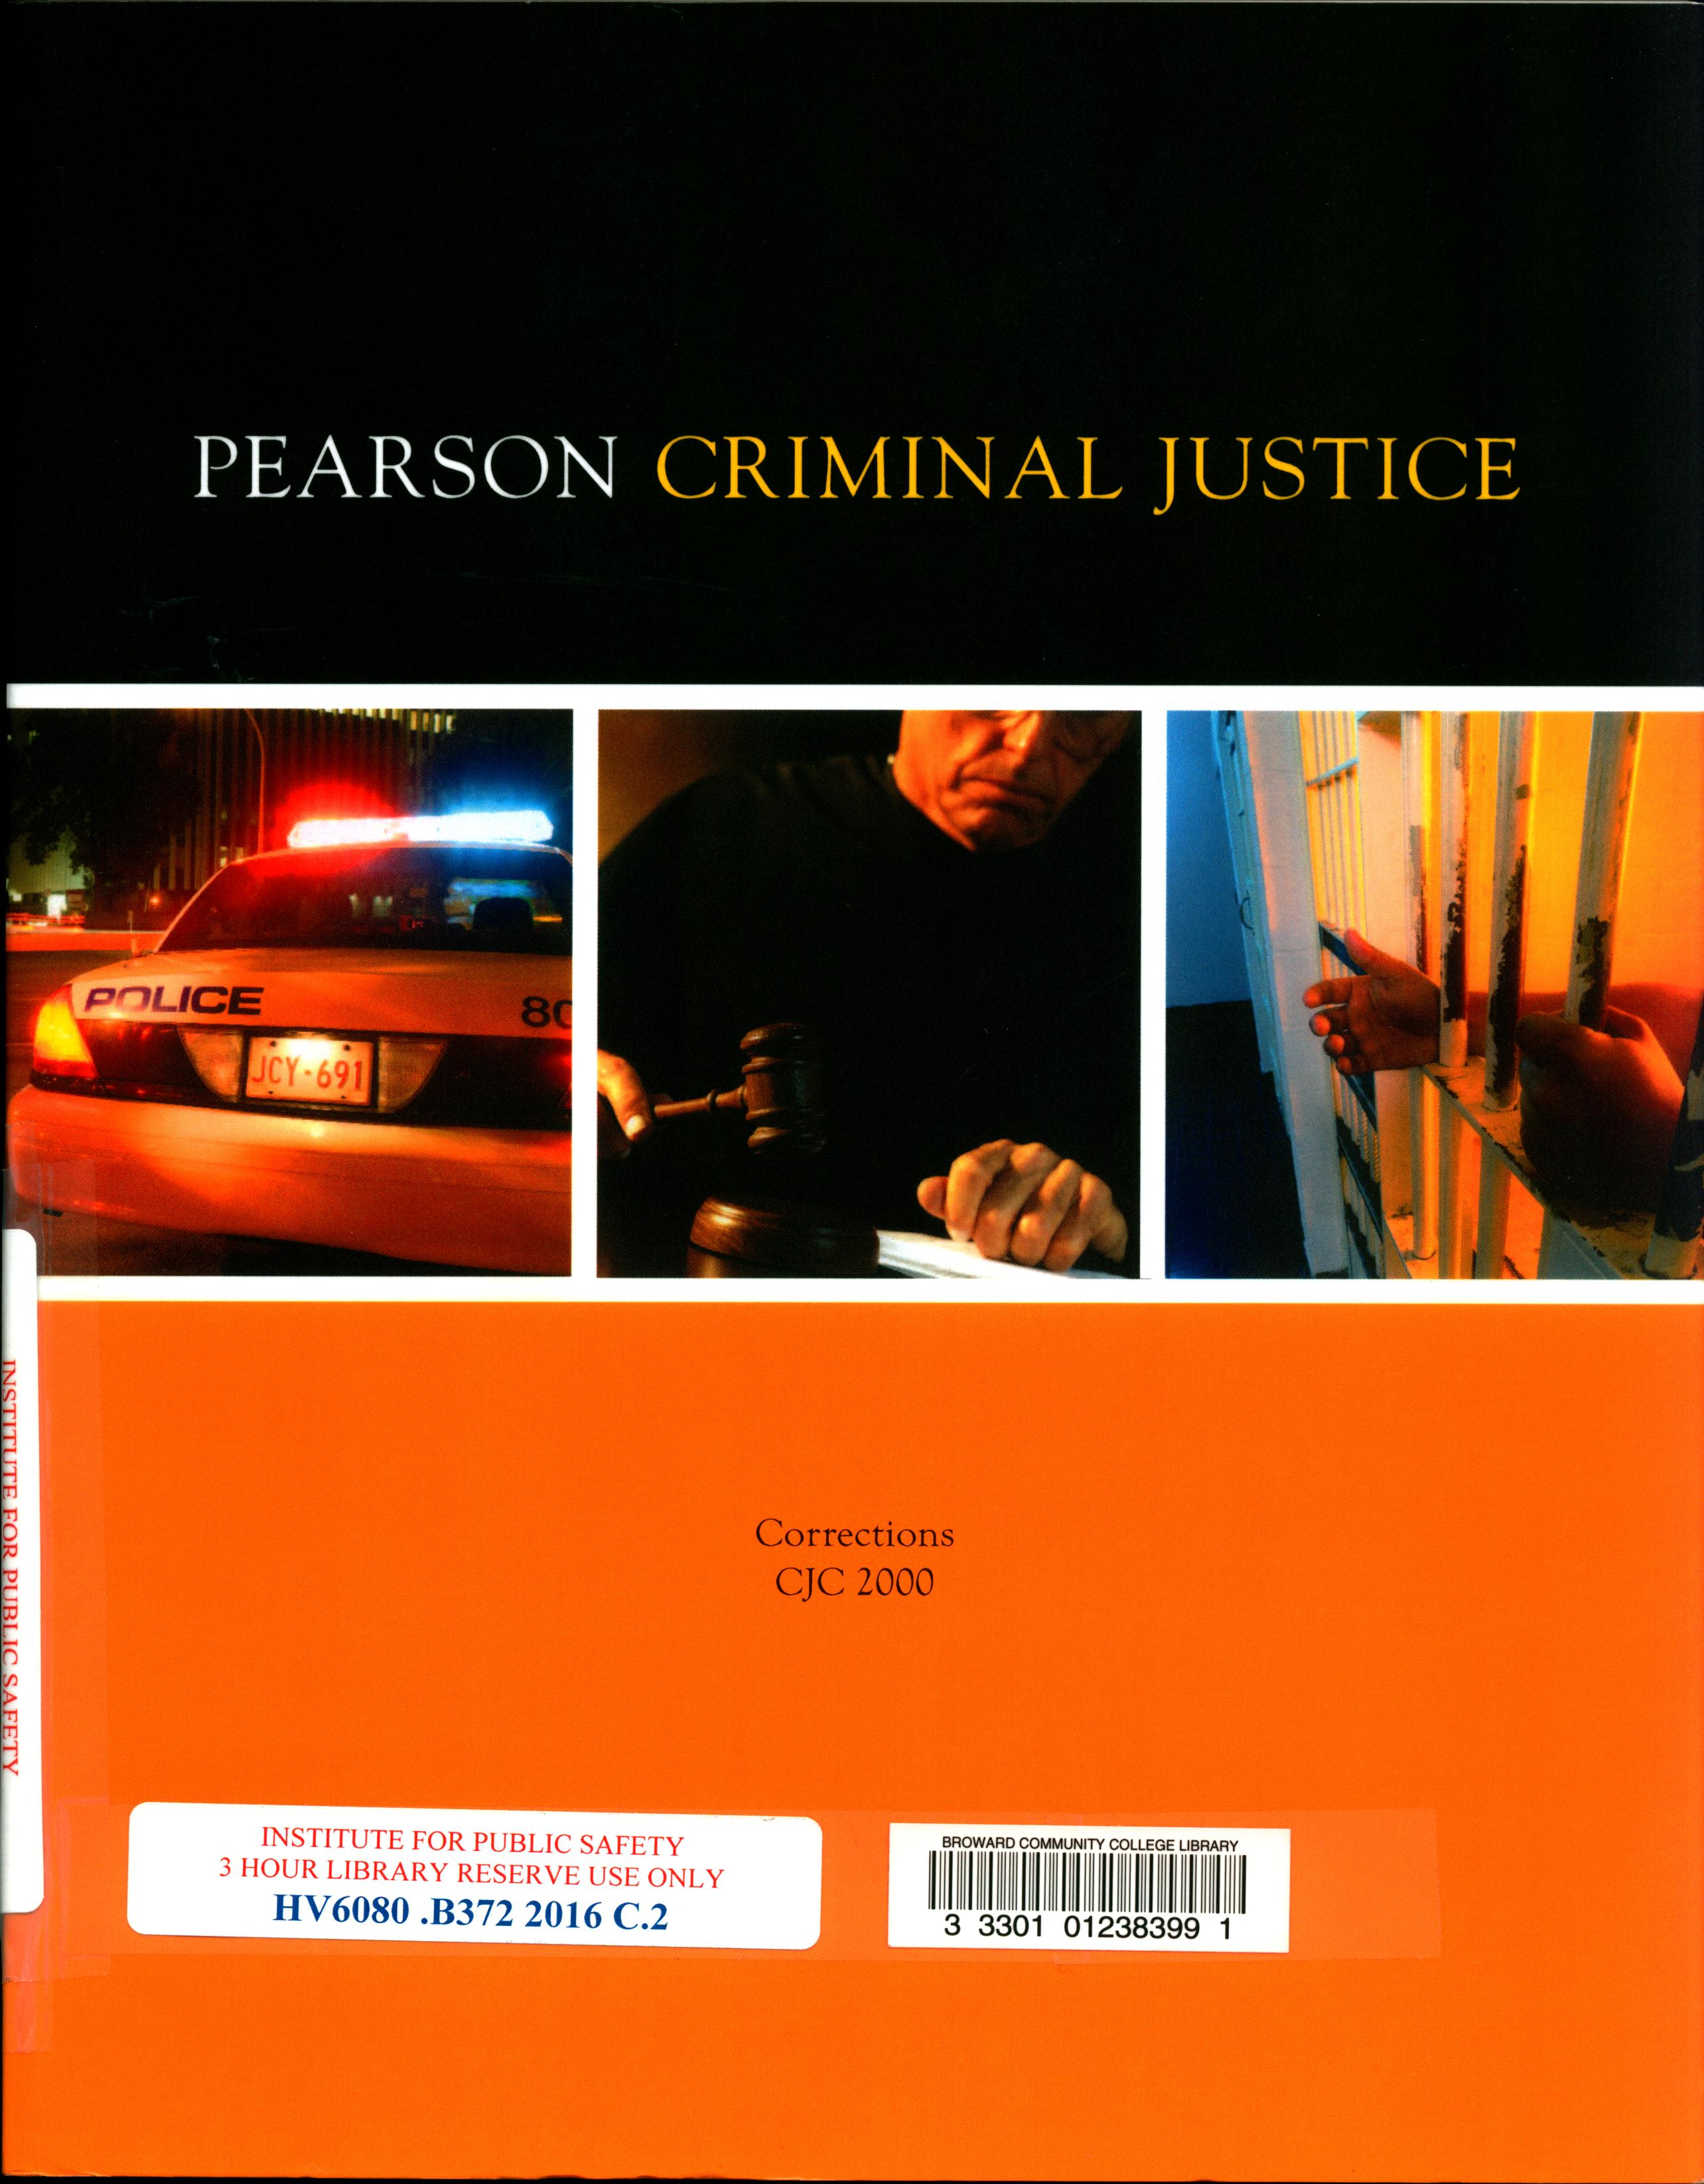 Pearson Criminal Justice: Corrections